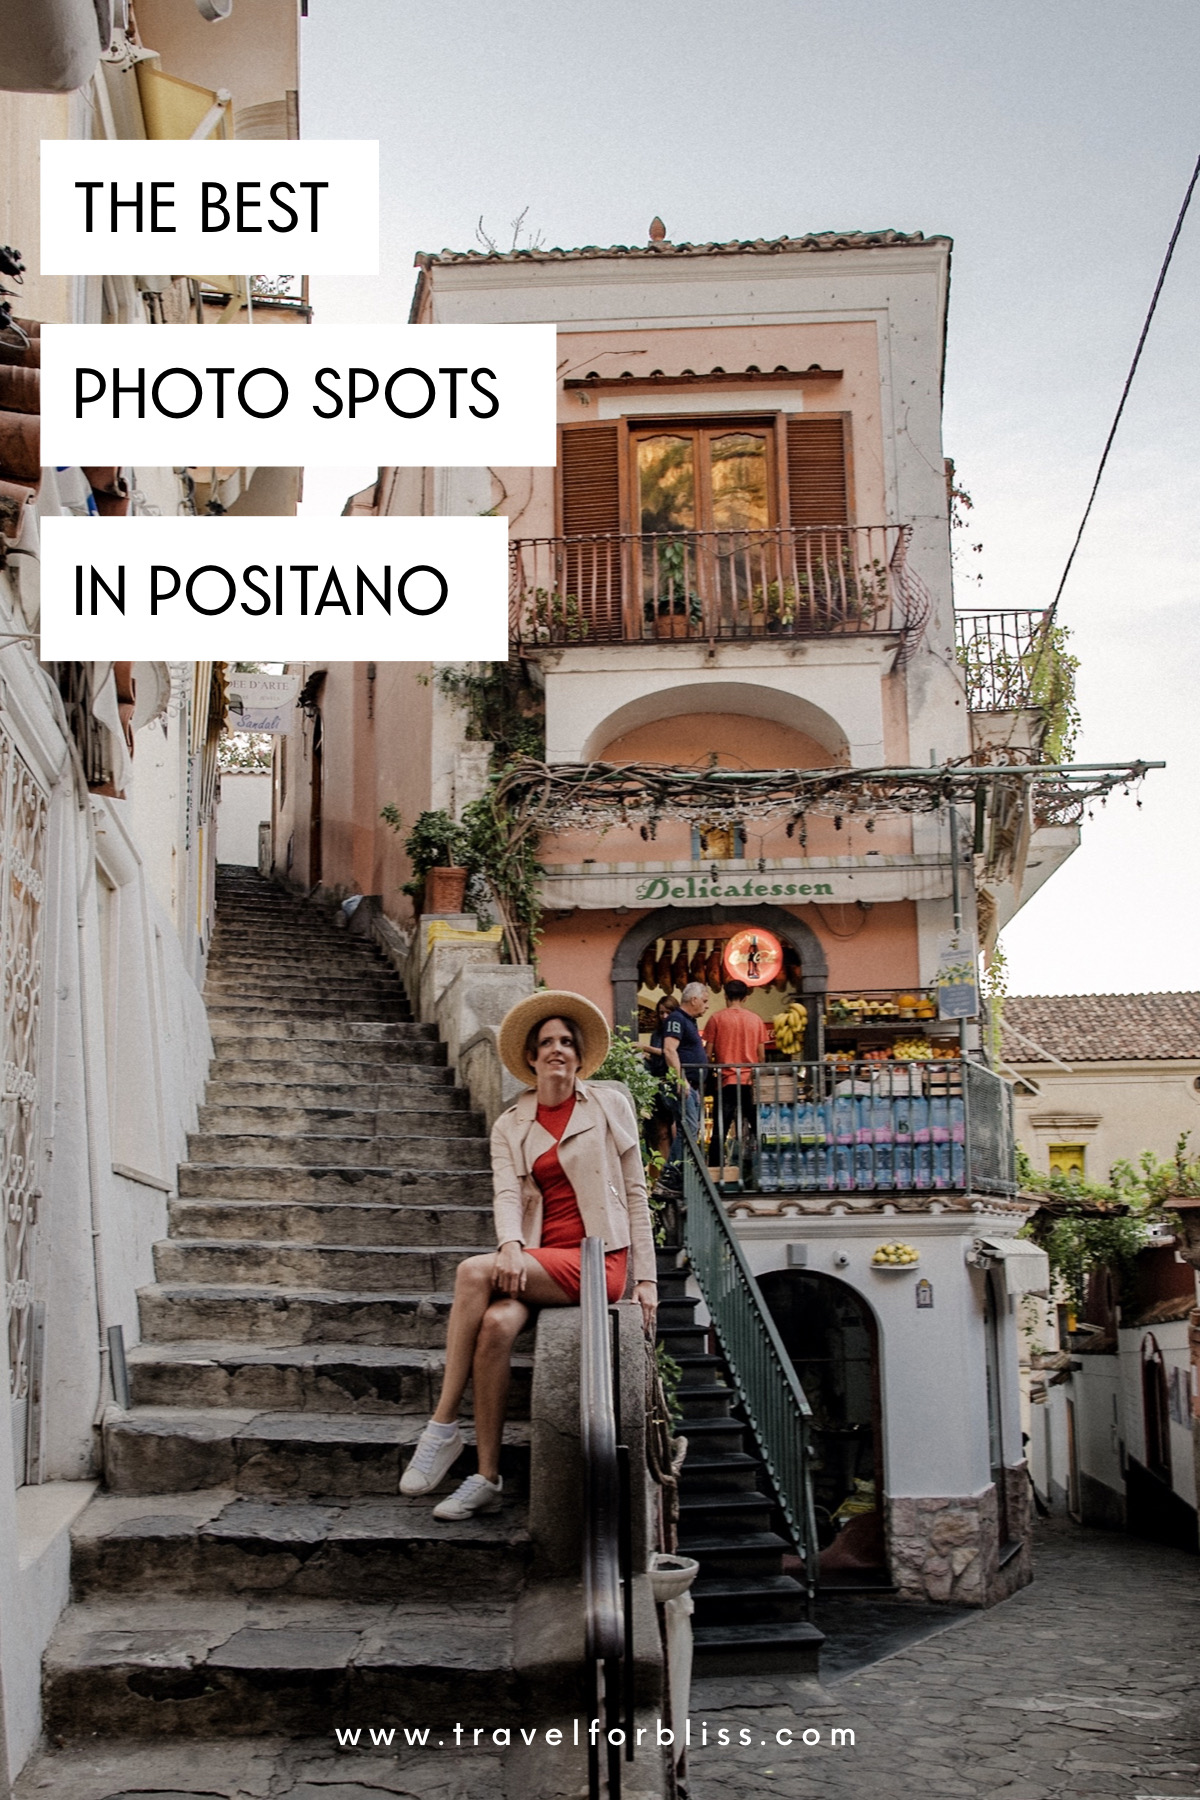 Discover the best photo spots in Positano with this photo guide. Positano is a beautiful town with many photo opportunities.